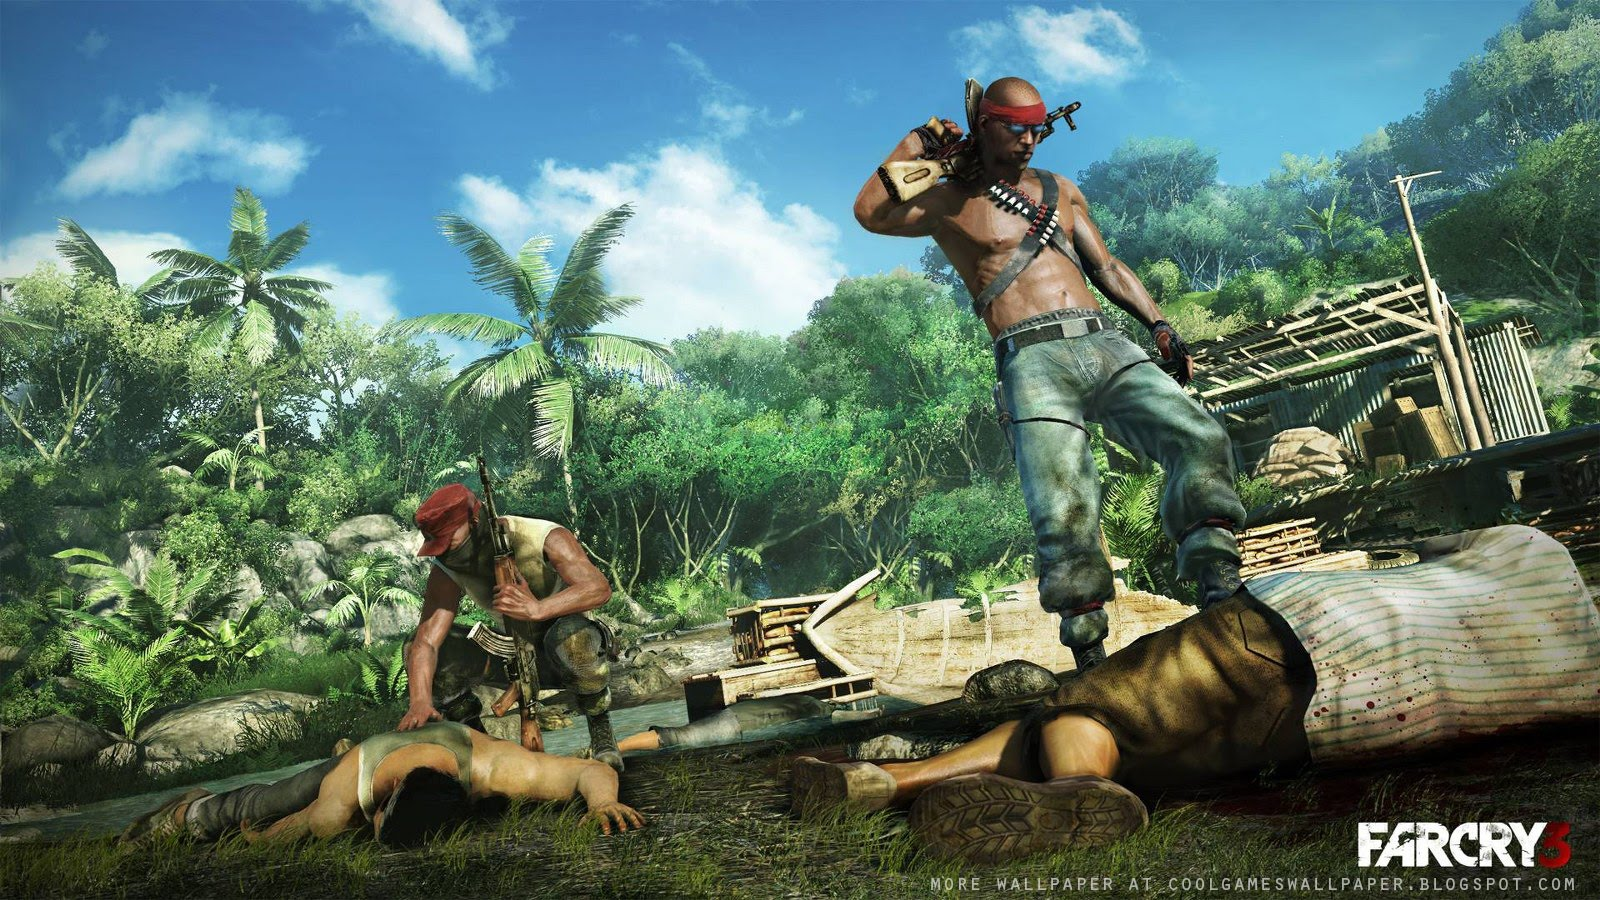 Far Cry 3 Wallpaper   Cool Games Wallpaper 1600x900